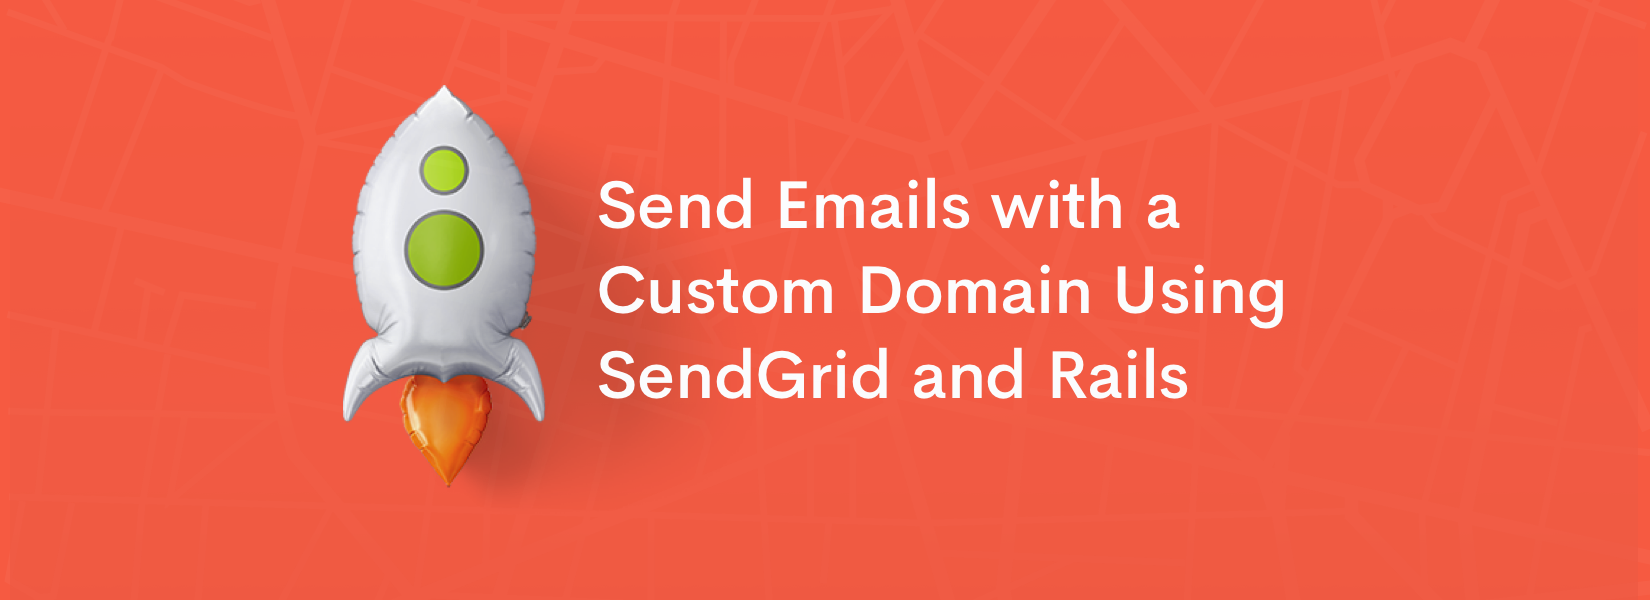 Send Emails with a Custom Domain Using SendGrid and Rails